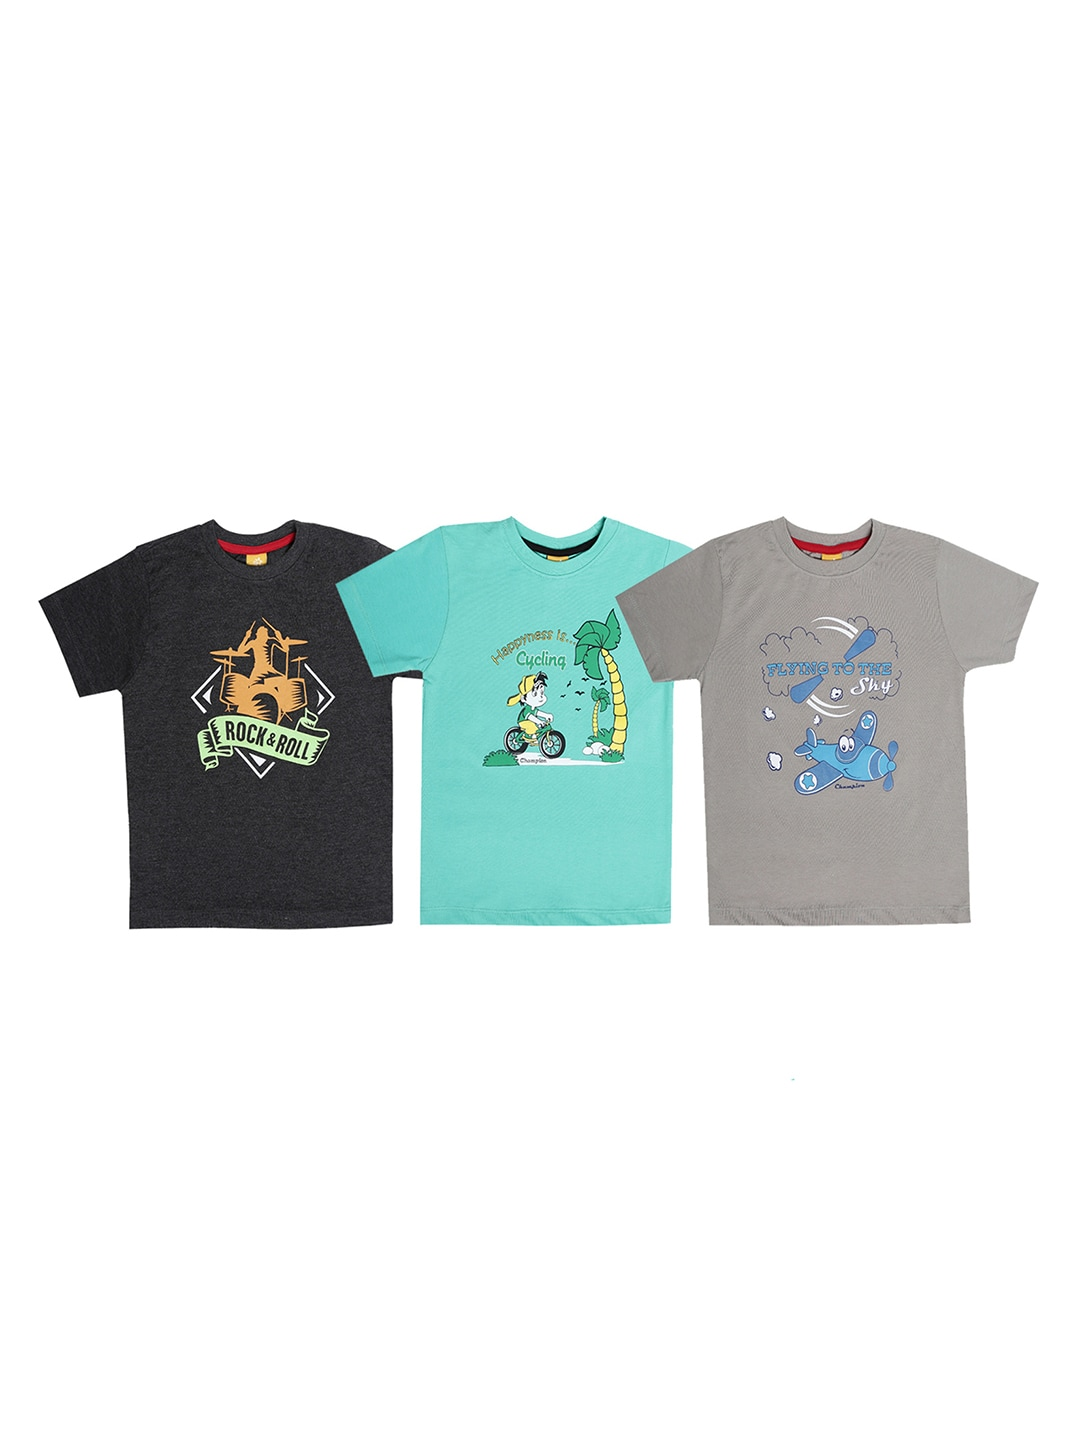 49cff8acffd2 Boys shirts buy shirts for boys online in india jpg 1080x1440 Cotton  seartist baby pink cartoon